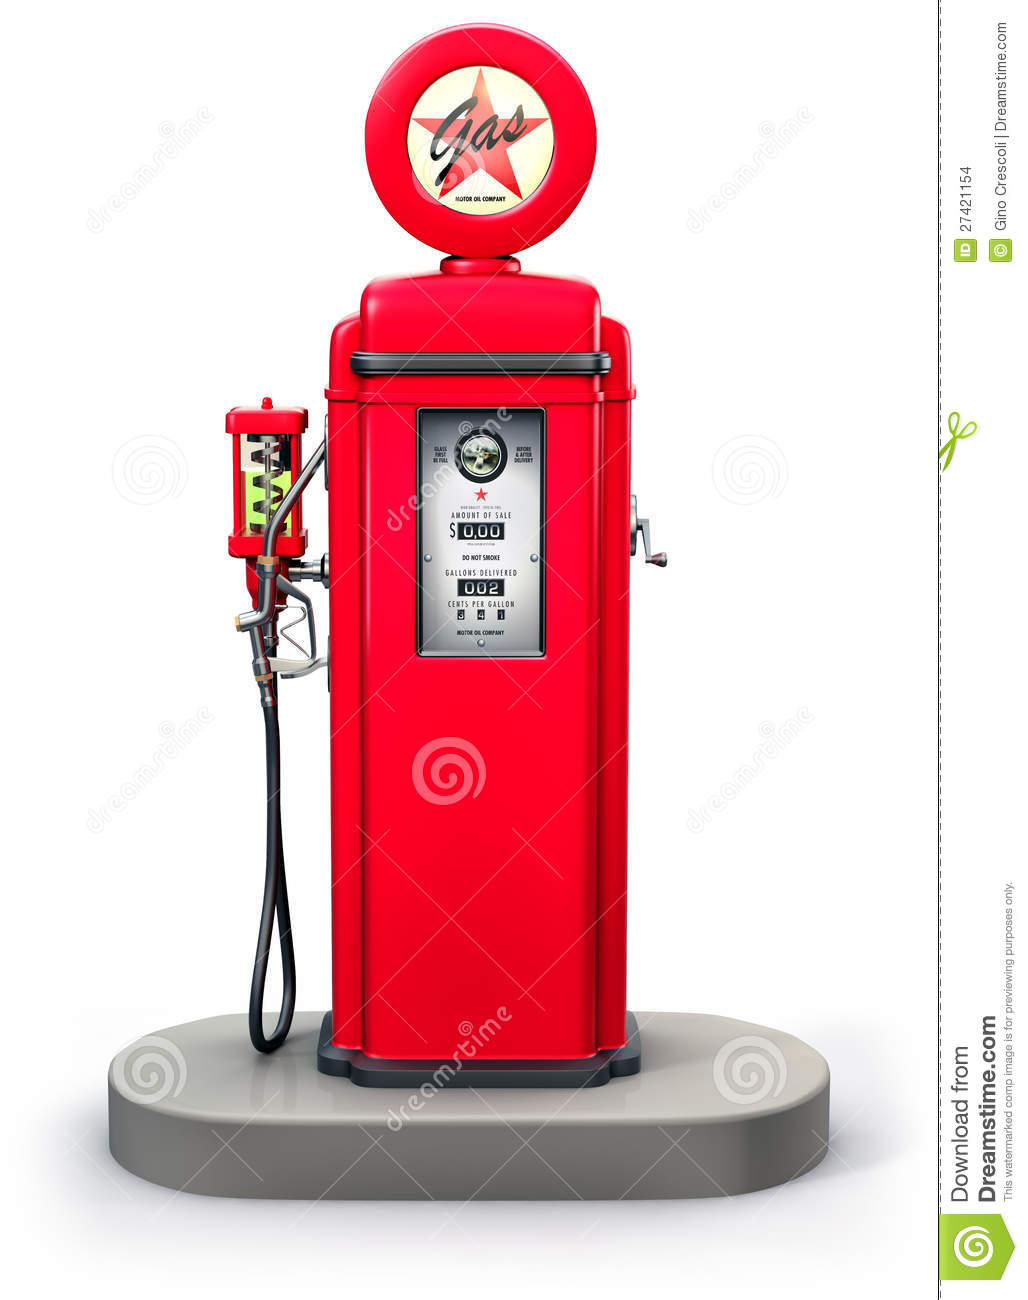 Vintage gas pump isolated on white, 3d illustration.